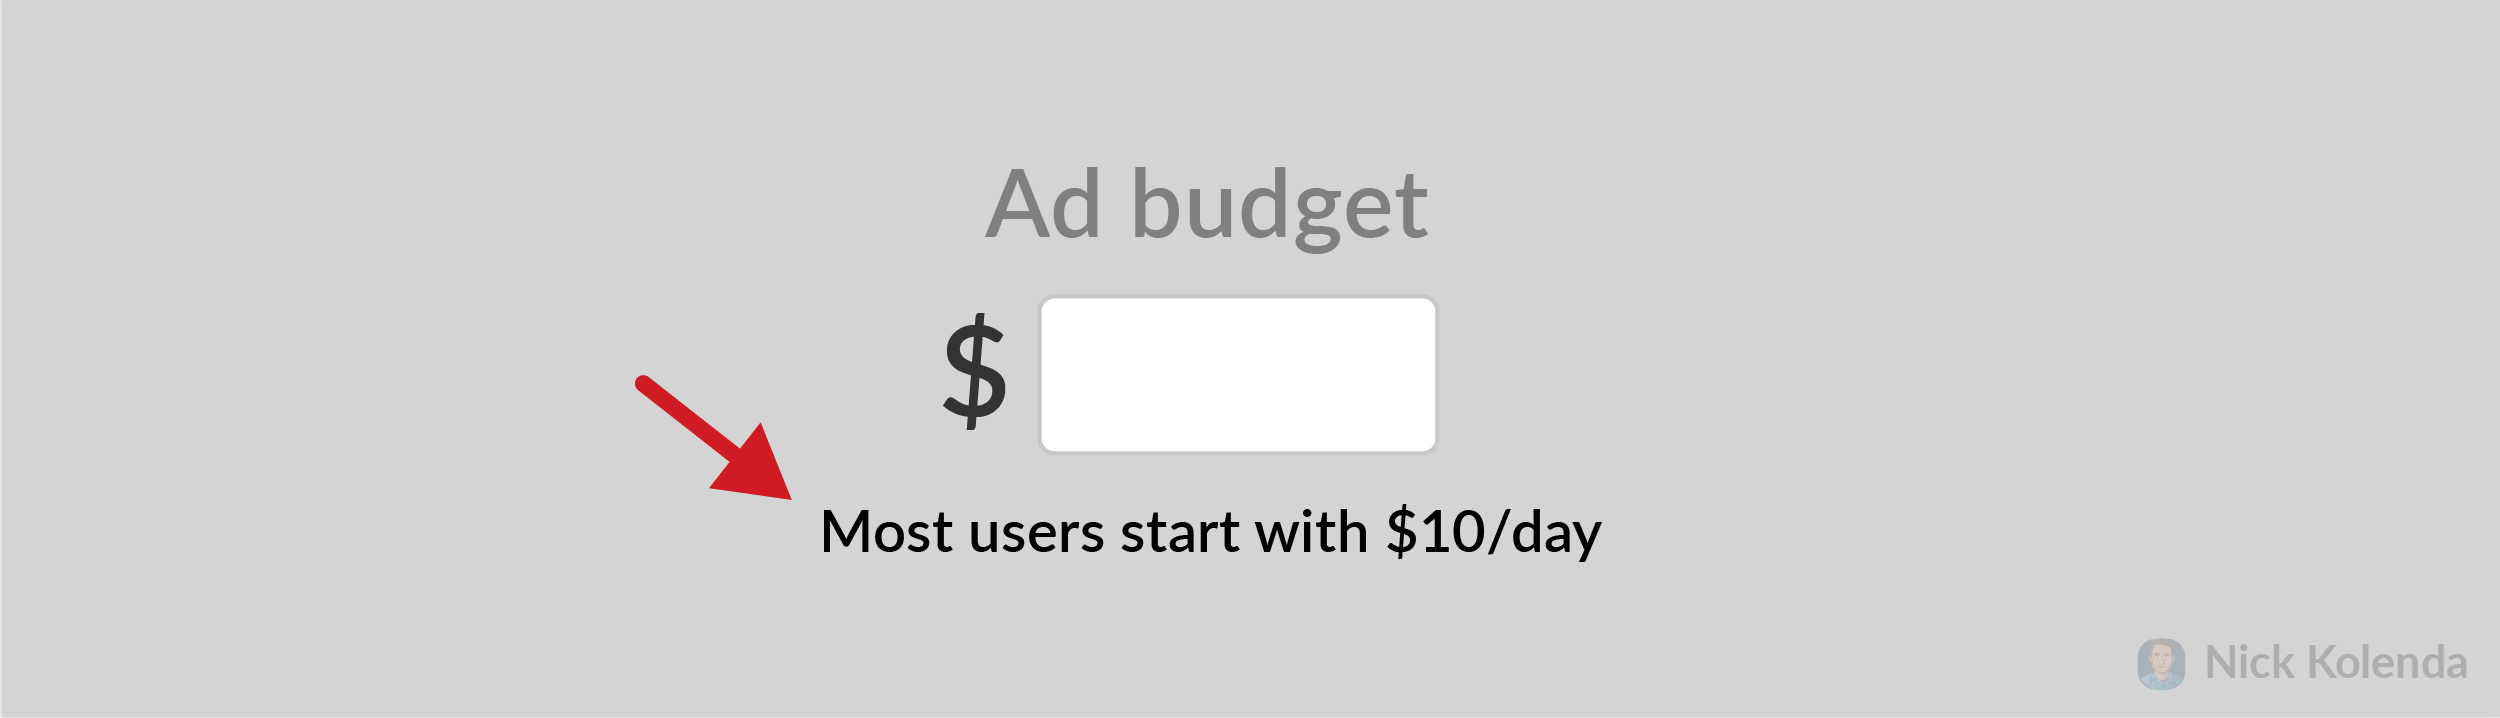 Input field for Ad Budget. Most users start with $10/day